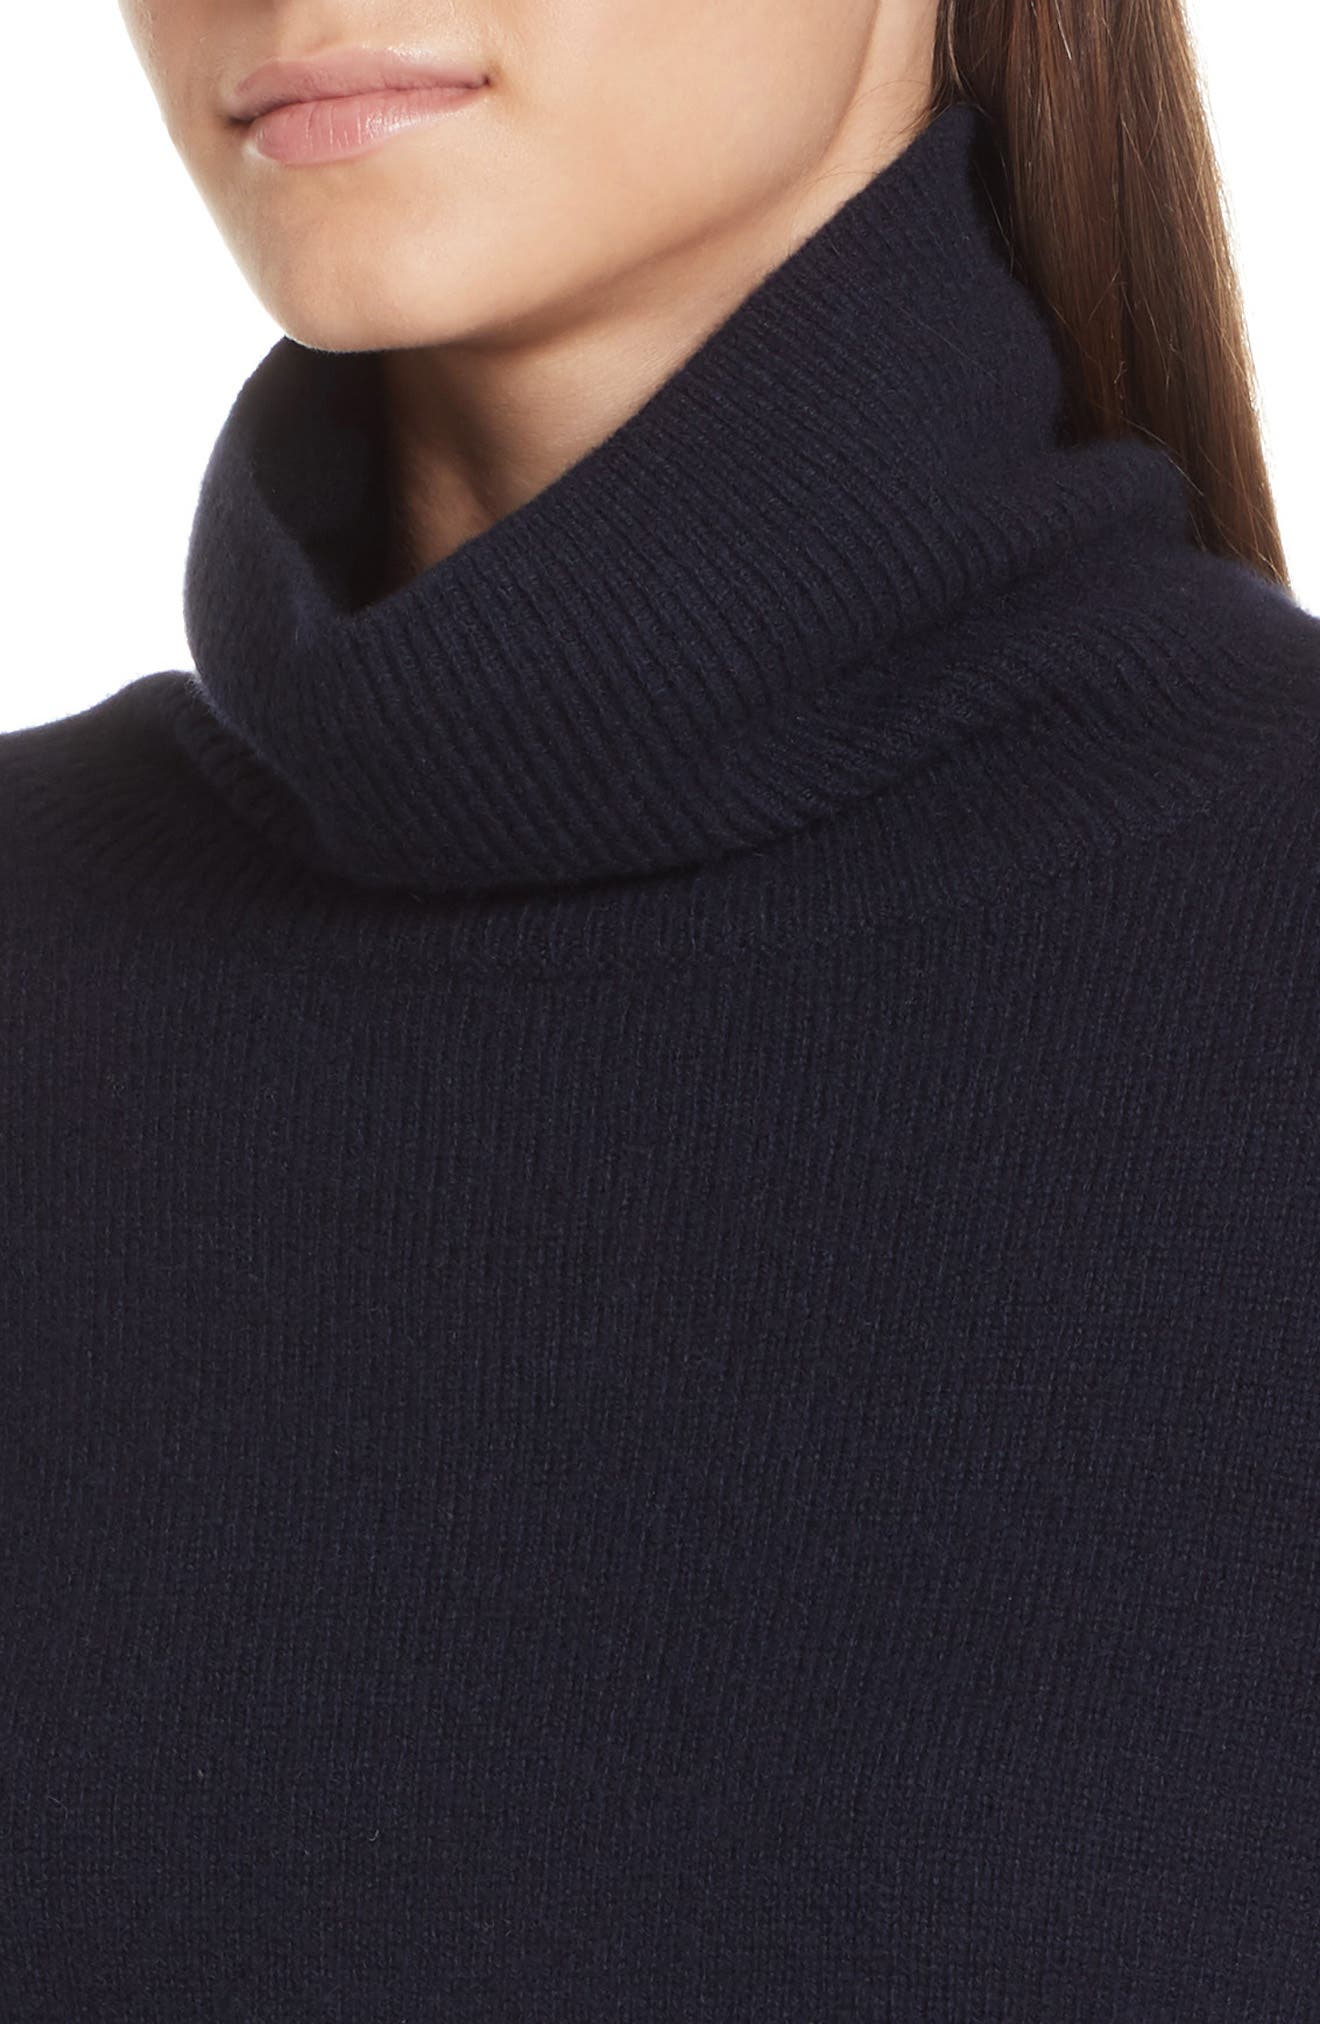 Bishop Sleeve Cashmere Sweater,                             Alternate thumbnail 4, color,                             403